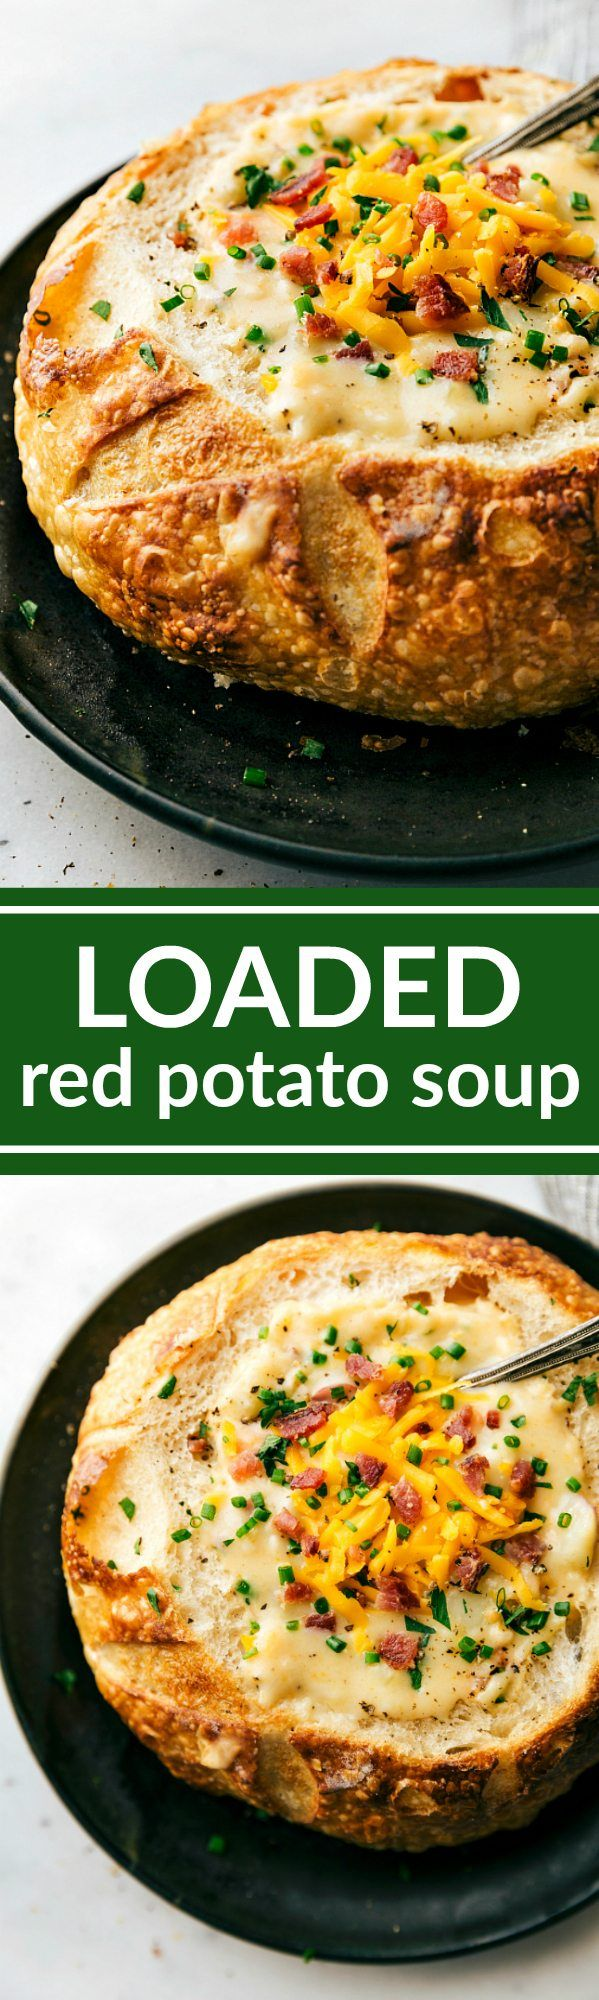 A delicious and fully loaded cheesy potato soup made with red potatoes instead! All the flavors you know and love stuffed into a potato and made into a soup! via chelseasmessyapron.com #potatosoup